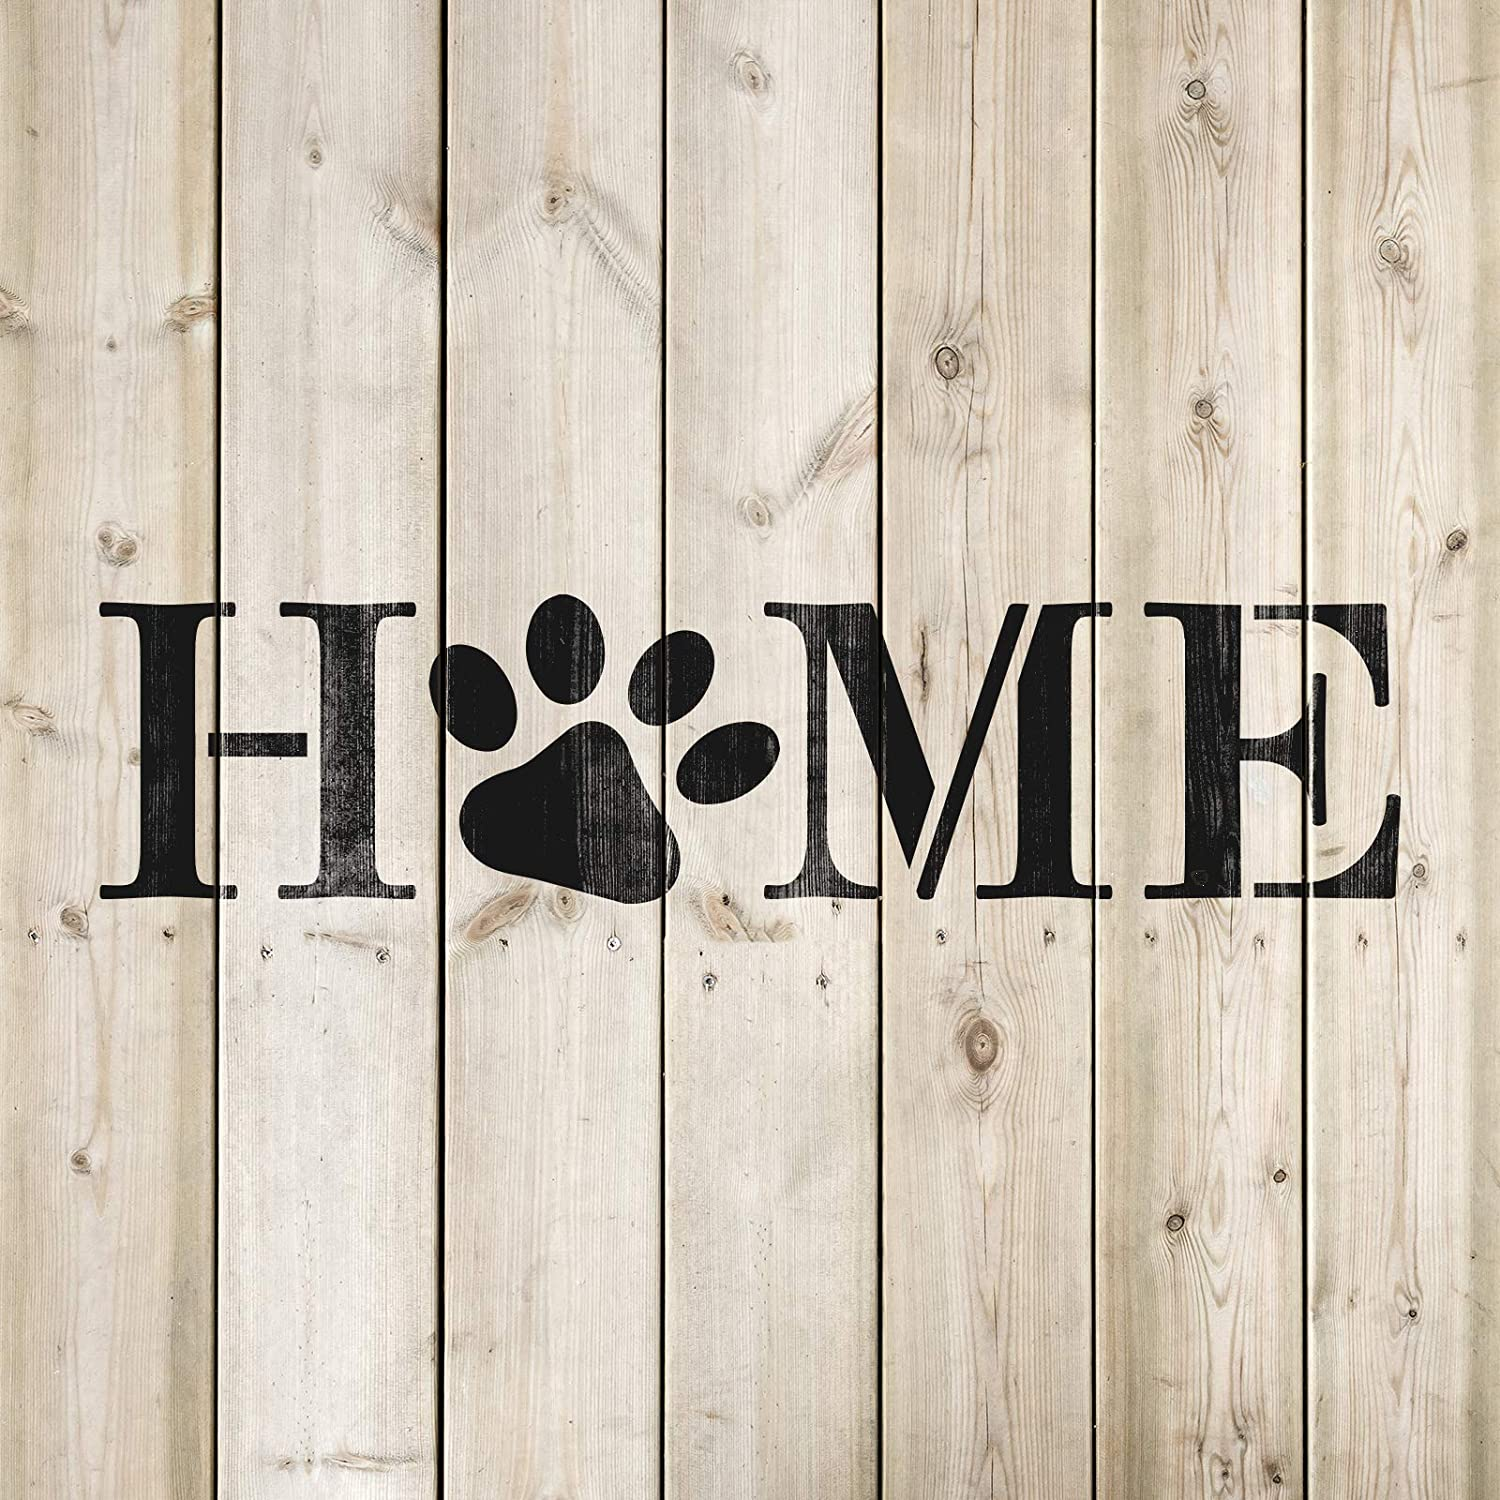 Reusable Stencils for Painting in Small /& Large Sizes Home Paw Print Stencil Template for Walls and Crafts